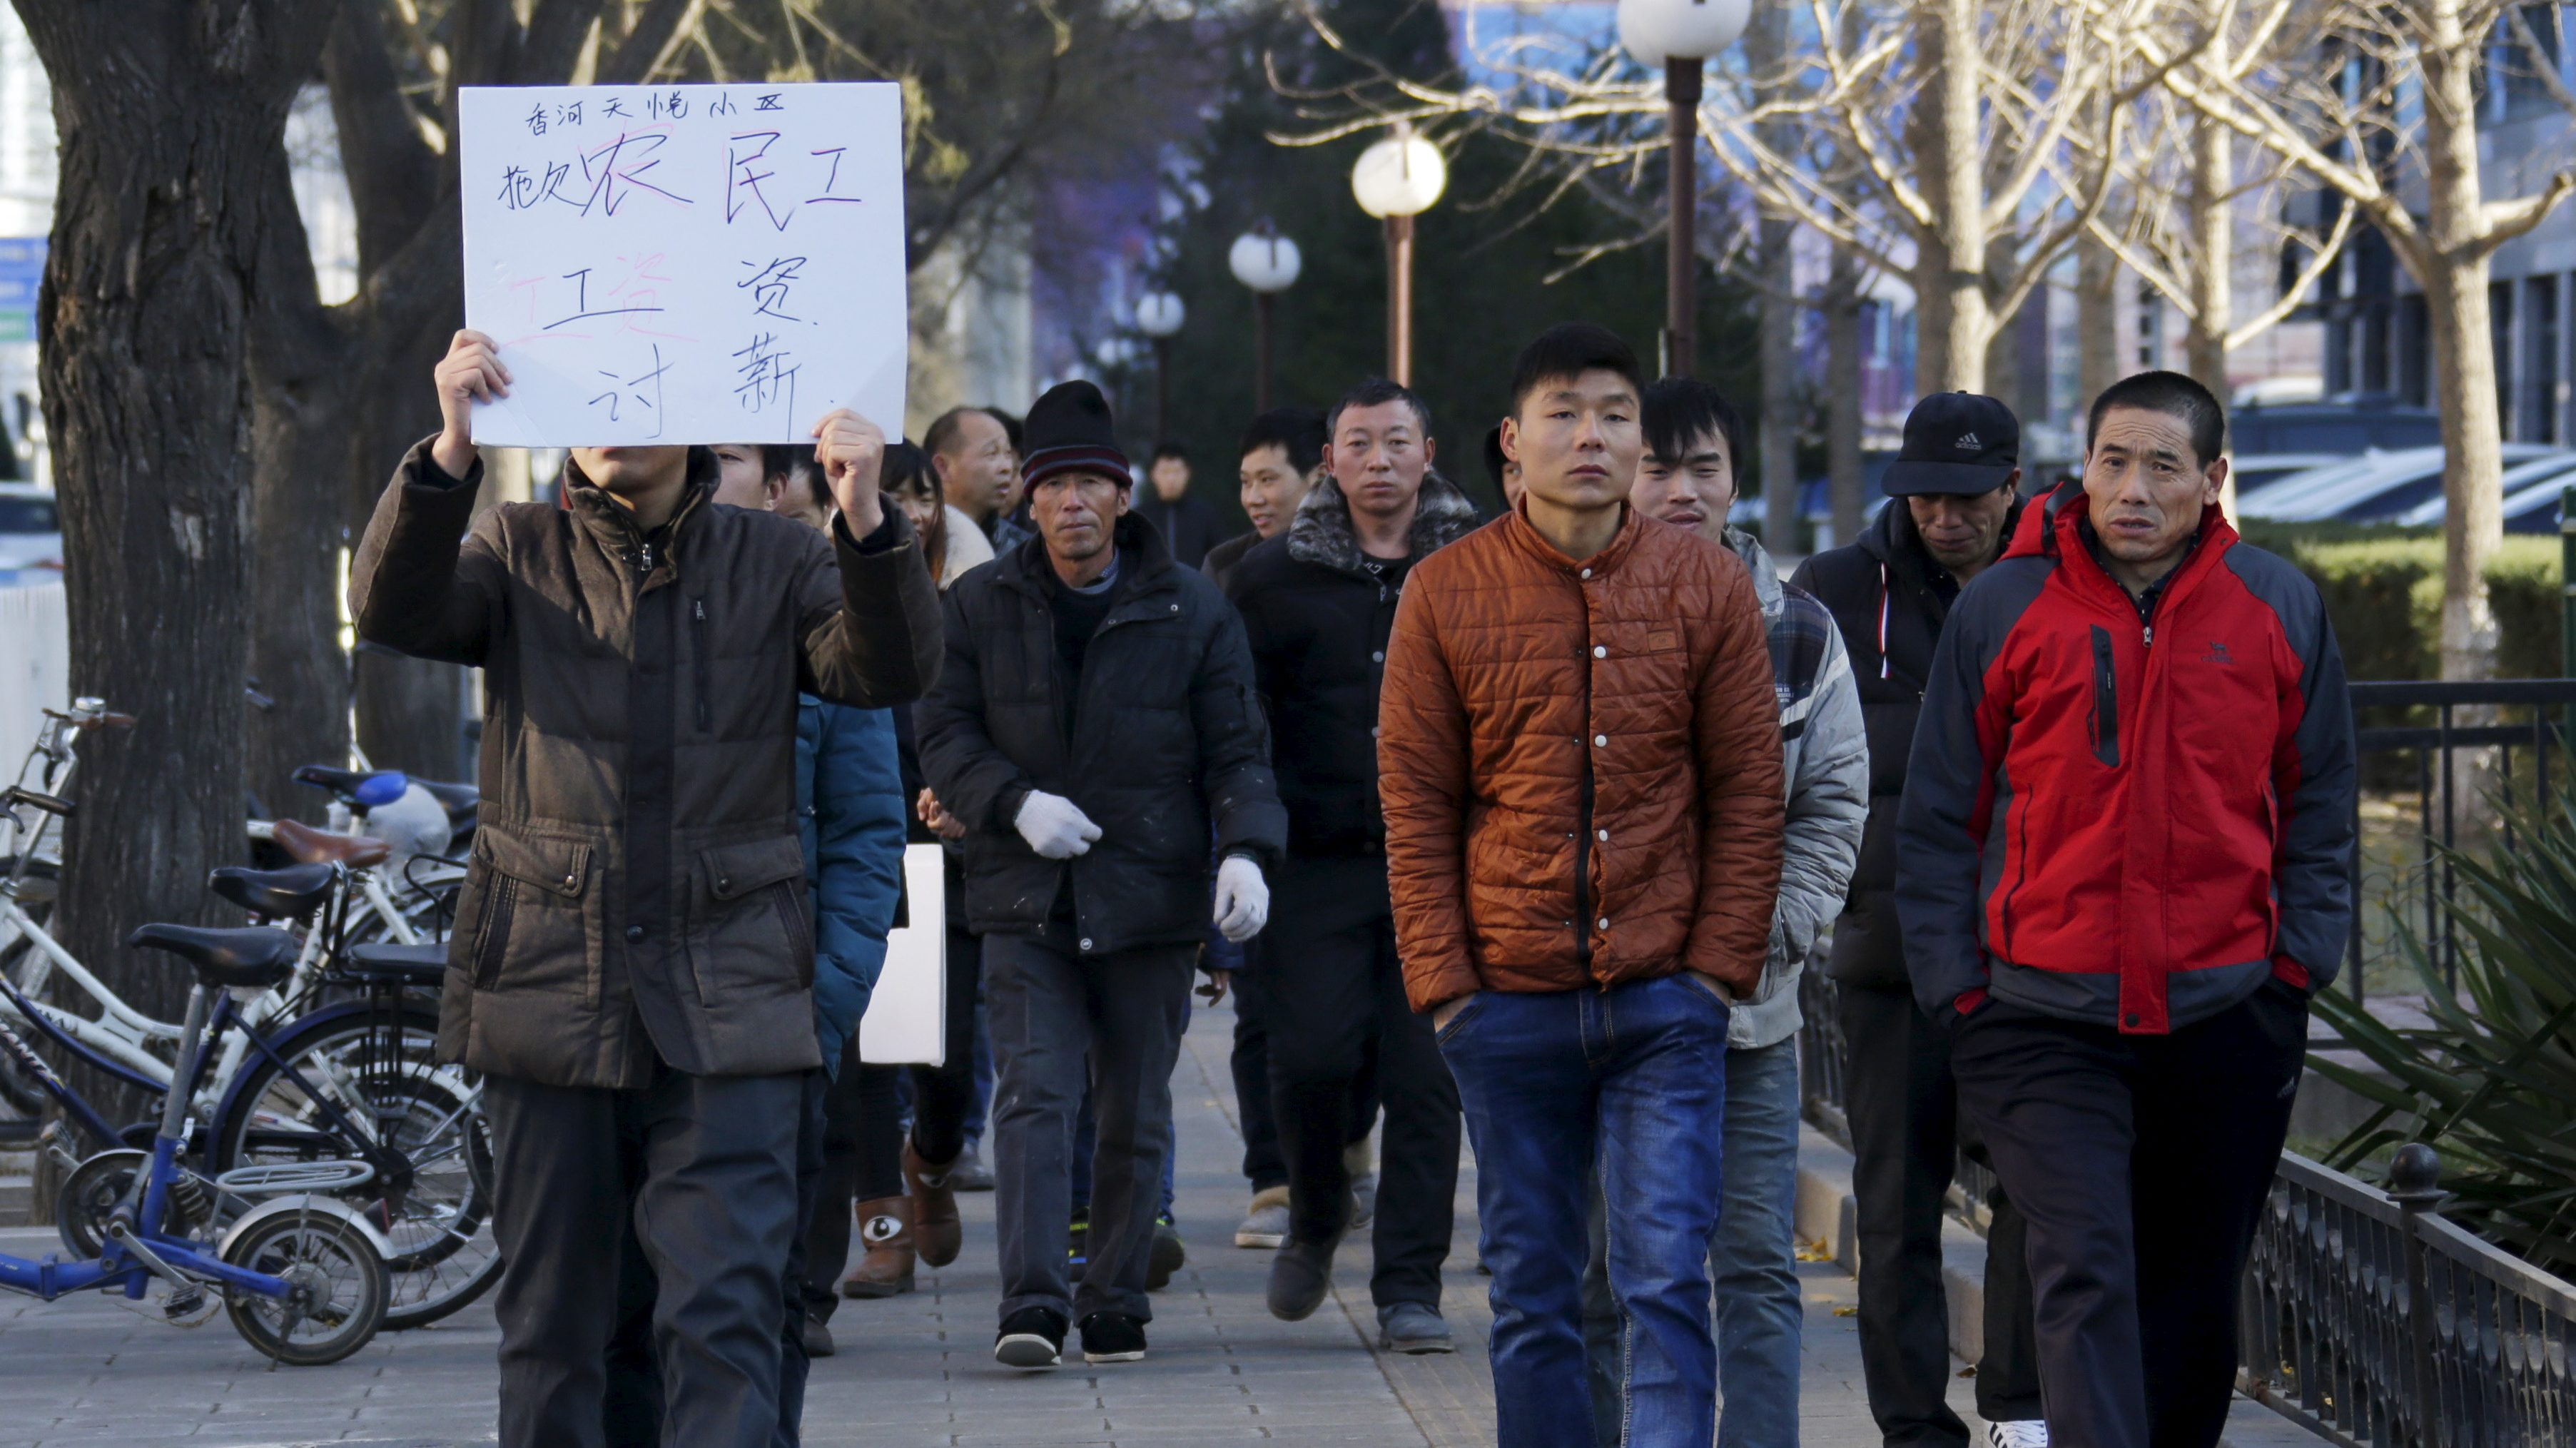 "Tian Honglei (L), a migrant worker from Henan province, holds a placard as he marches with his fellow workers along a main street to protest against a construction site and demand their salaries, in central Beijing, China, December 10, 2015. A total of 32 construction workers took to the street on Thursday to demand a construction site in Xianghe county of Hebei province to pay what they say are their delayed salaries worth about a total of 660,000 yuan (102,510 USD). The Chinese characters on the placard read, ""Delay migrant worker salary, demanding payments"". REUTERS/Jason Lee - RTX1Y0QA"